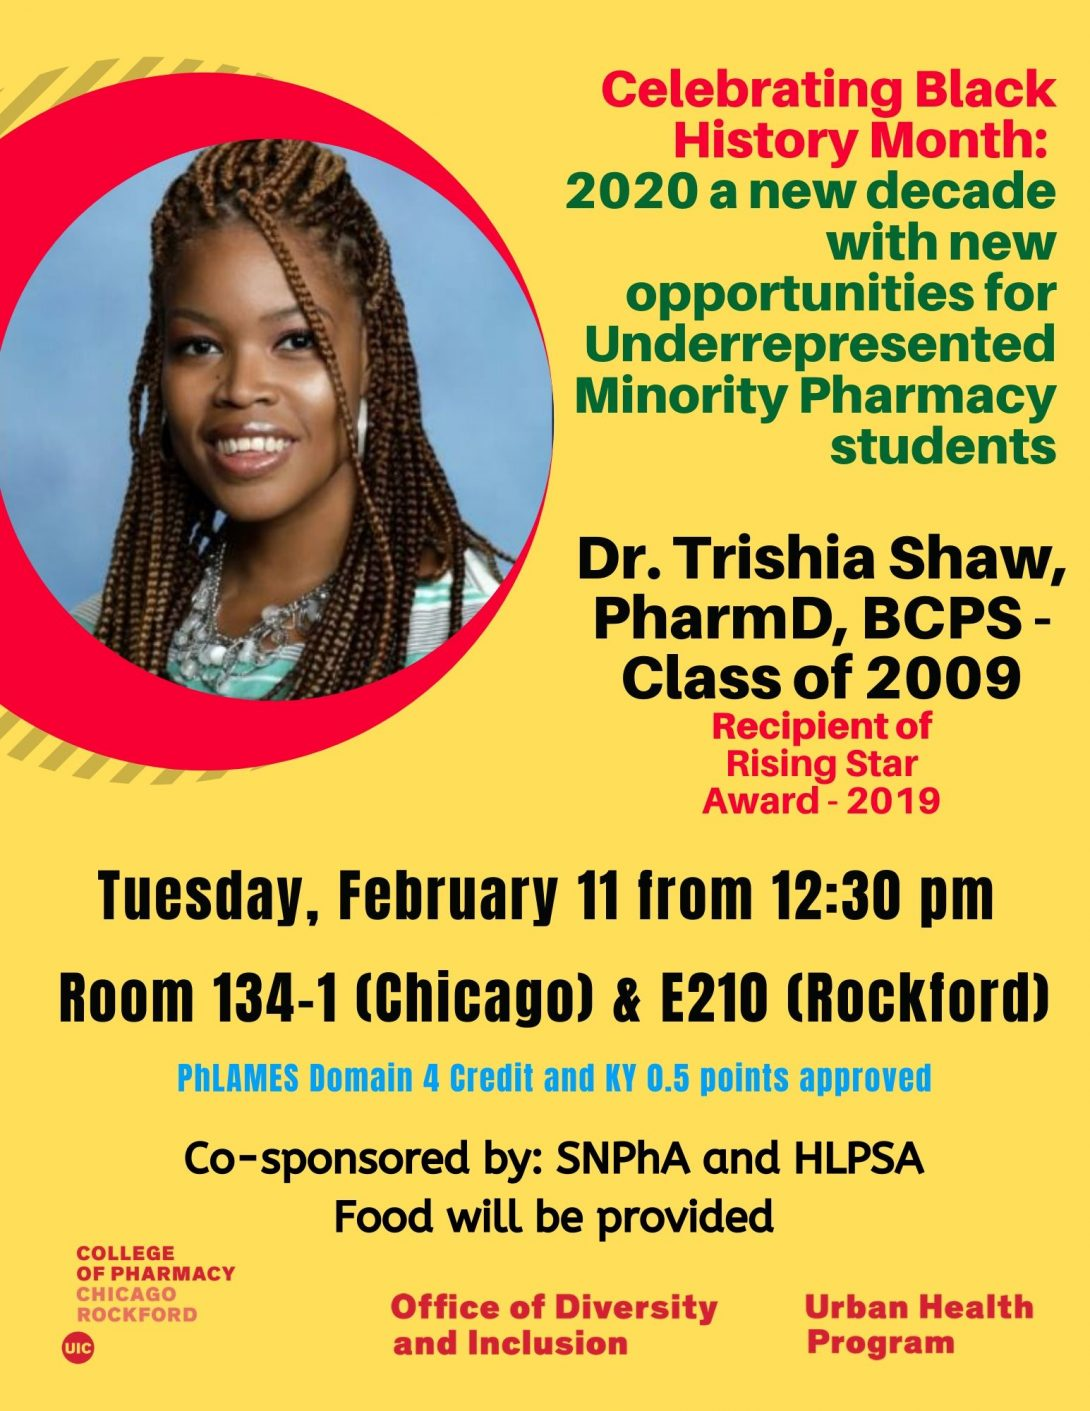 UIC COP celebrating Black History Month 2020 with Dr. Trishia Shaw event